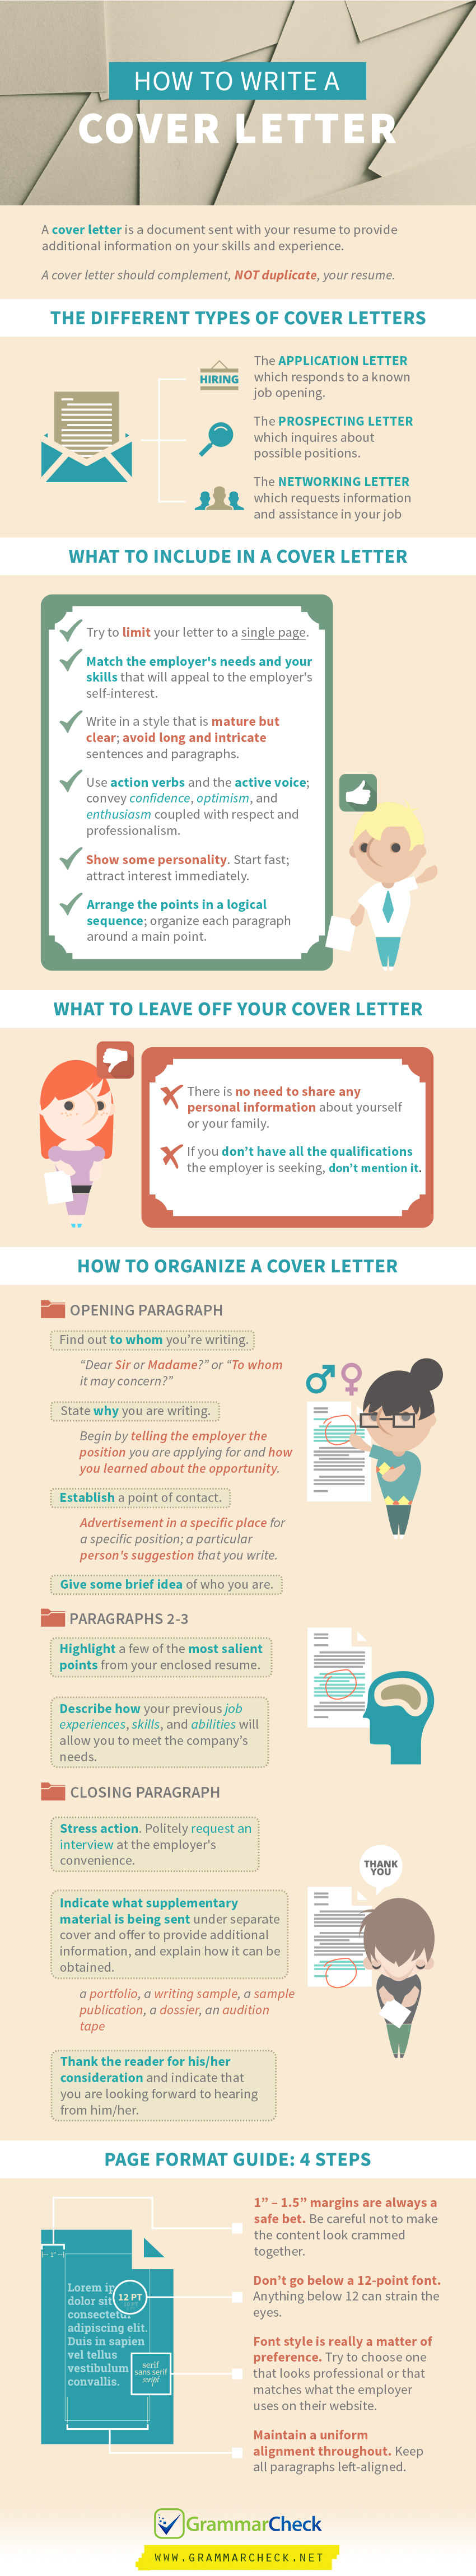 how-to-write-a-cover-letter-infographic